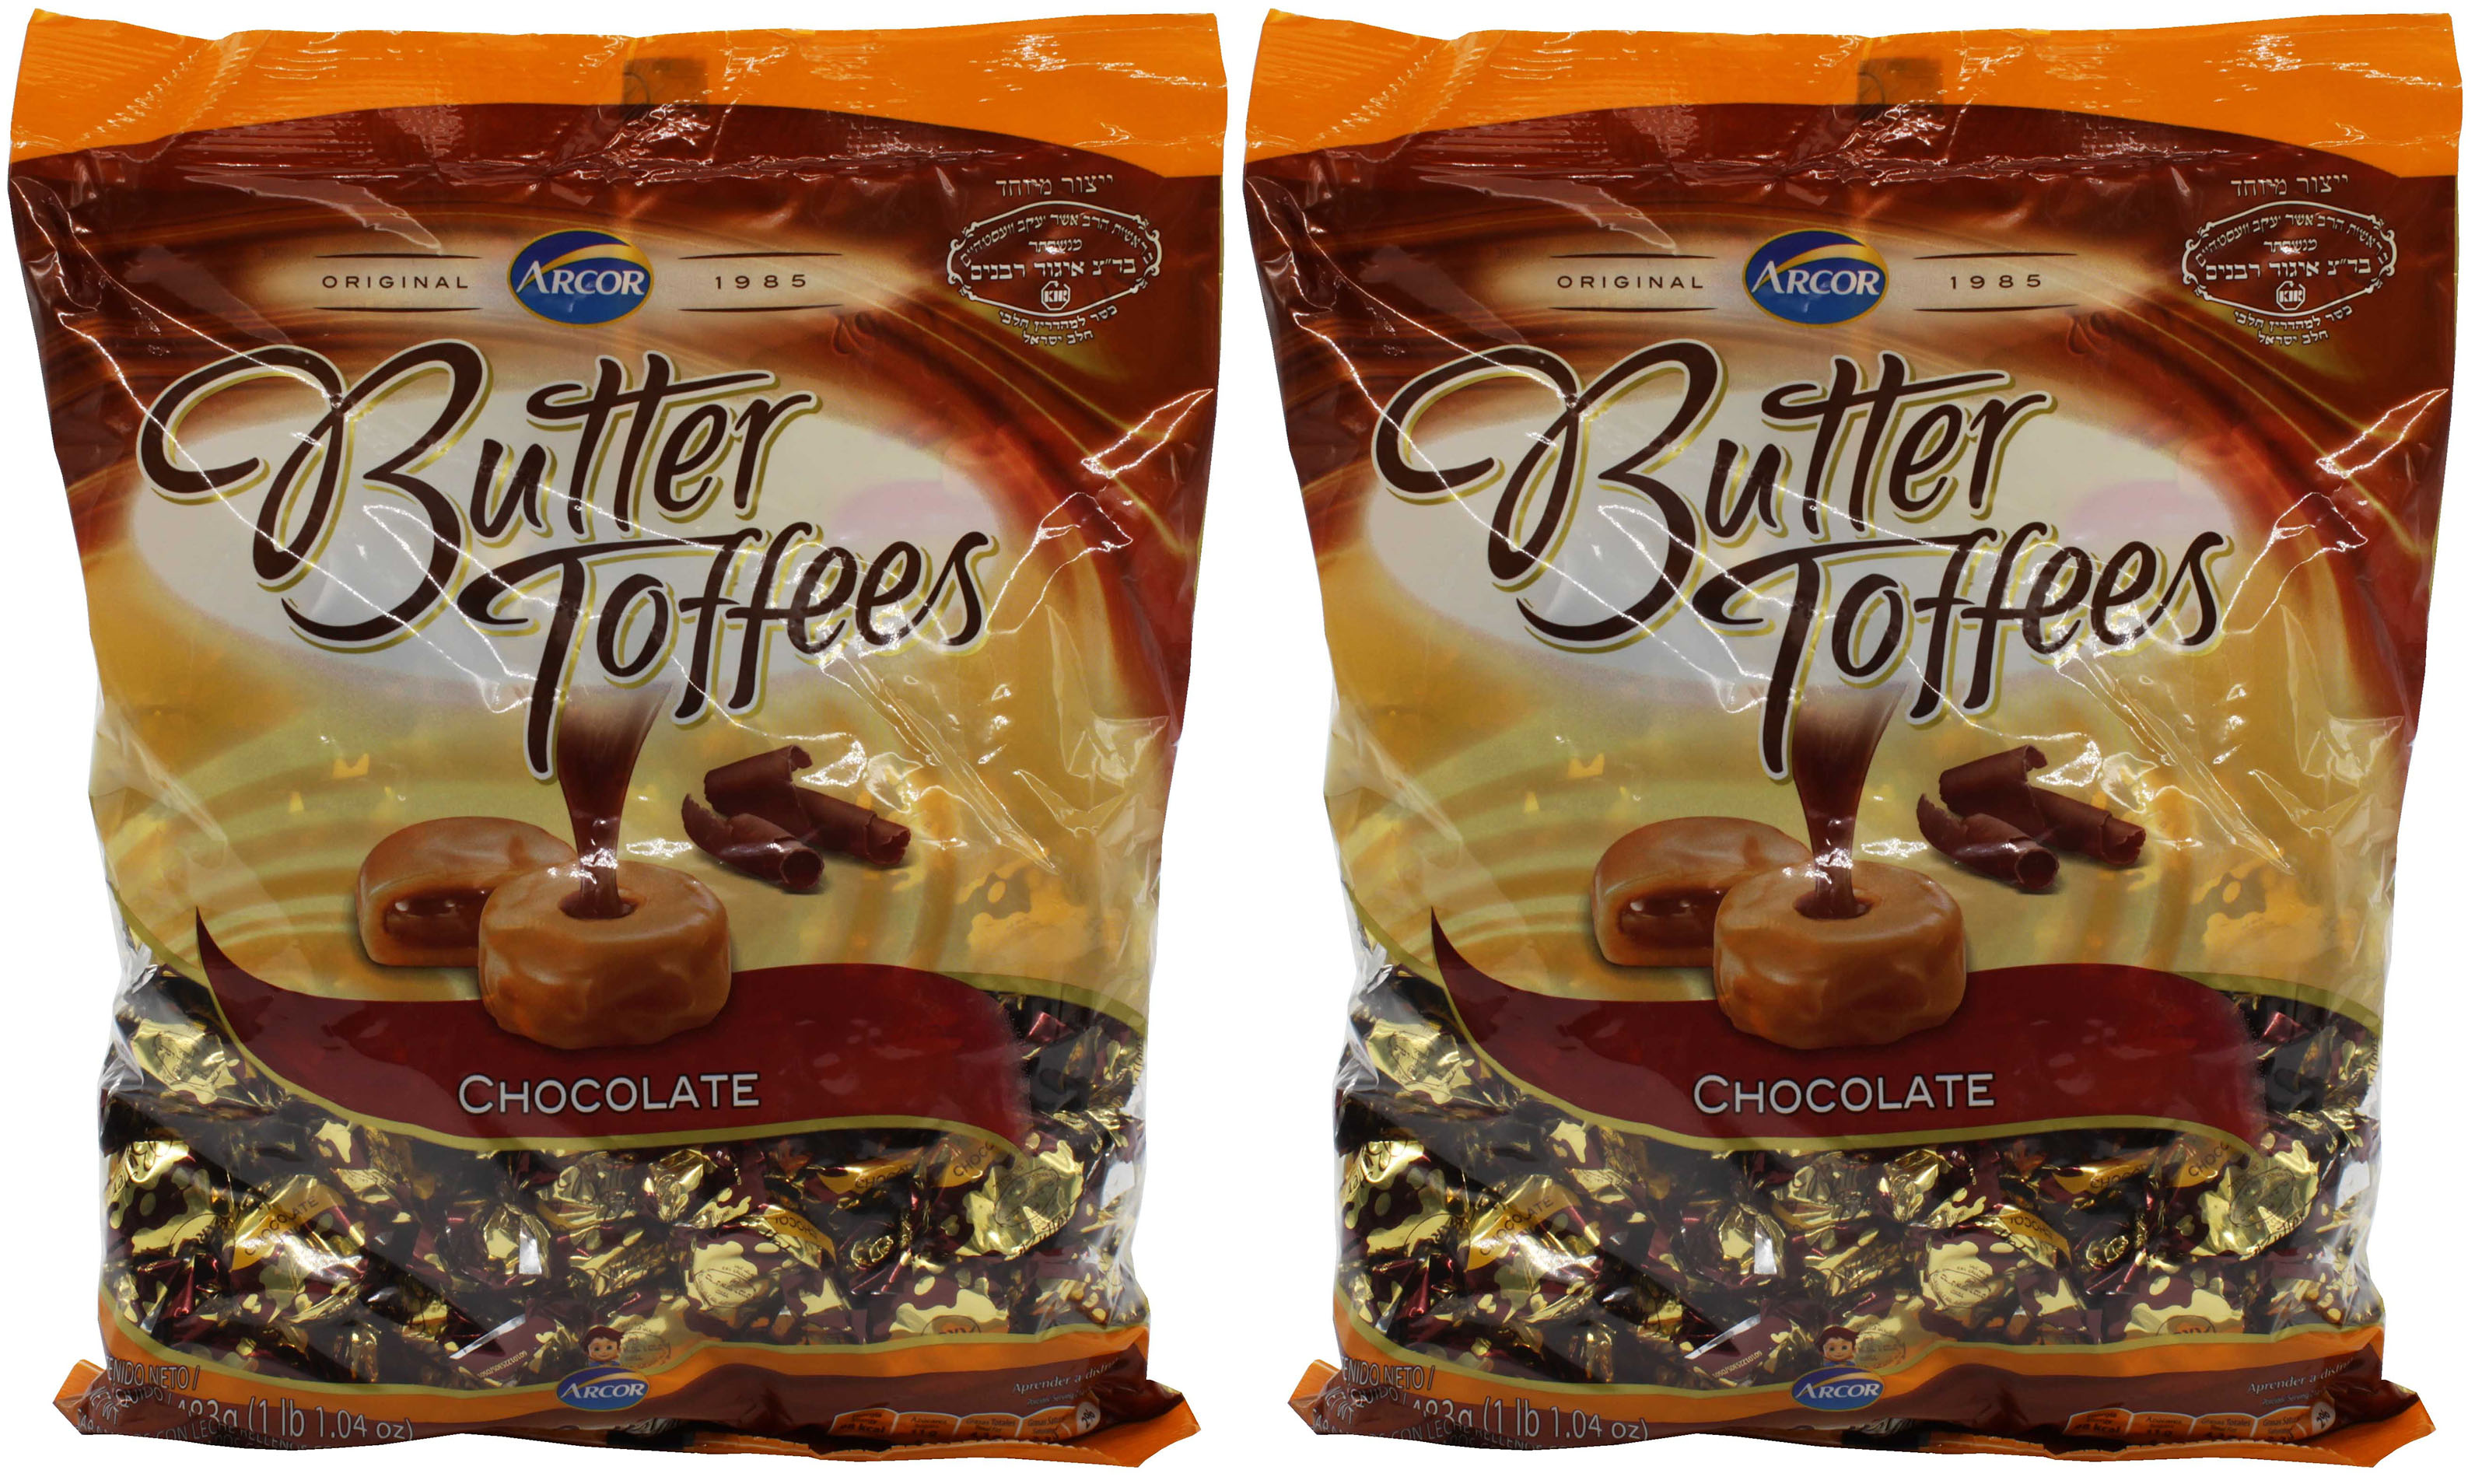 Arcor Butter Chocolate Kosher Toffee Dairy Large (Pack of 2) 1 lbs 1.04 oz ... by Arcor